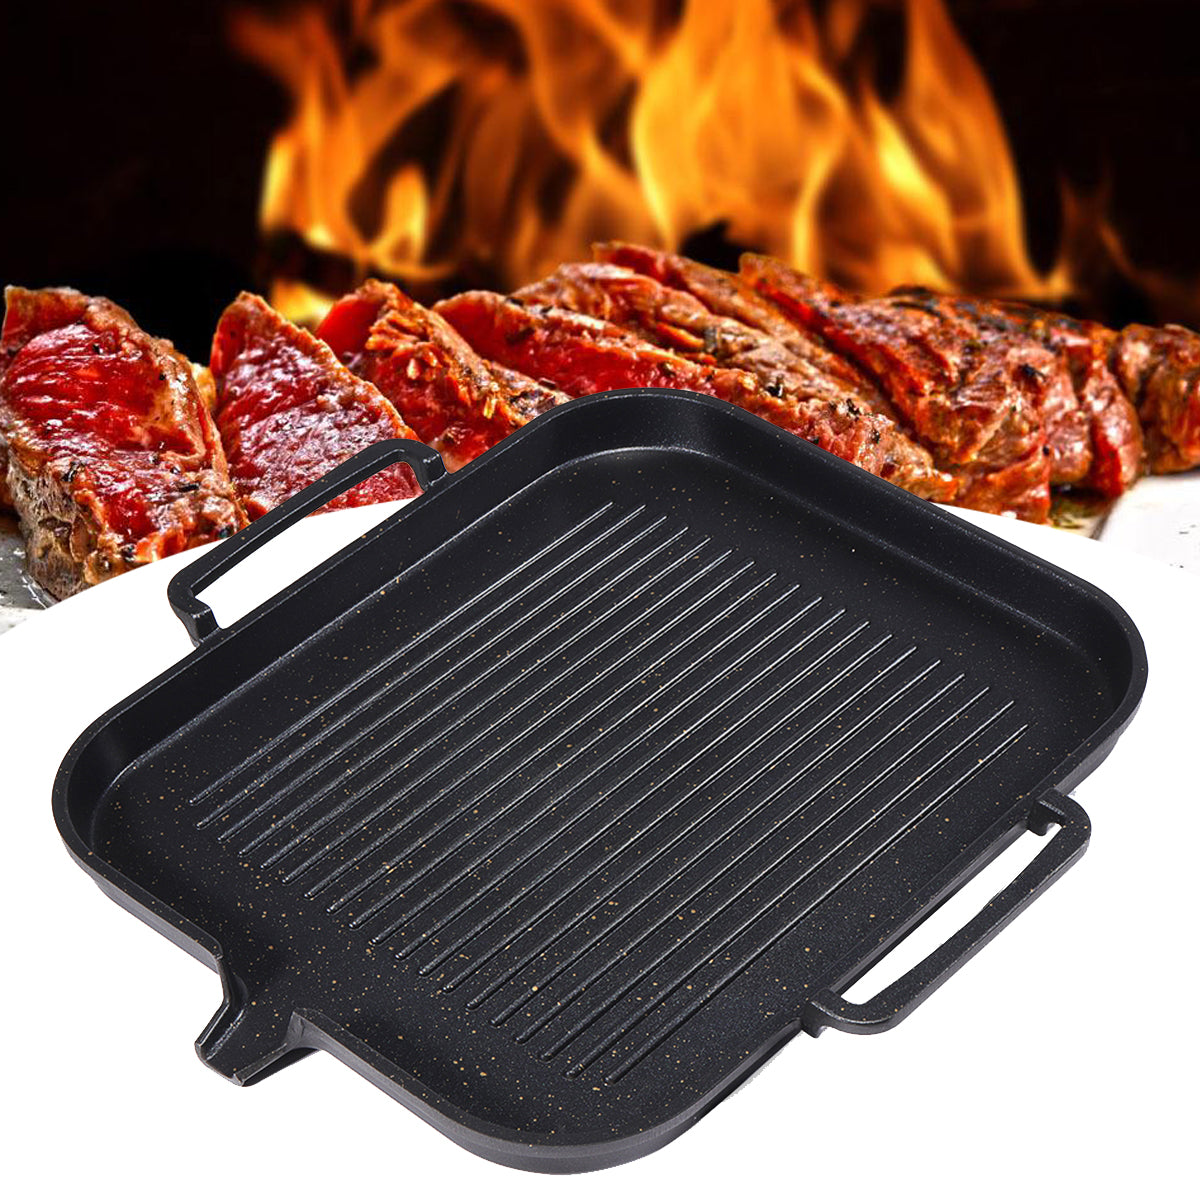 cozyrex,2-4 People BBQ Barbecue Aluminum Frying Grill Pan Plate - Non Stick Coating Cookware Induction Cooking,CozyRex,